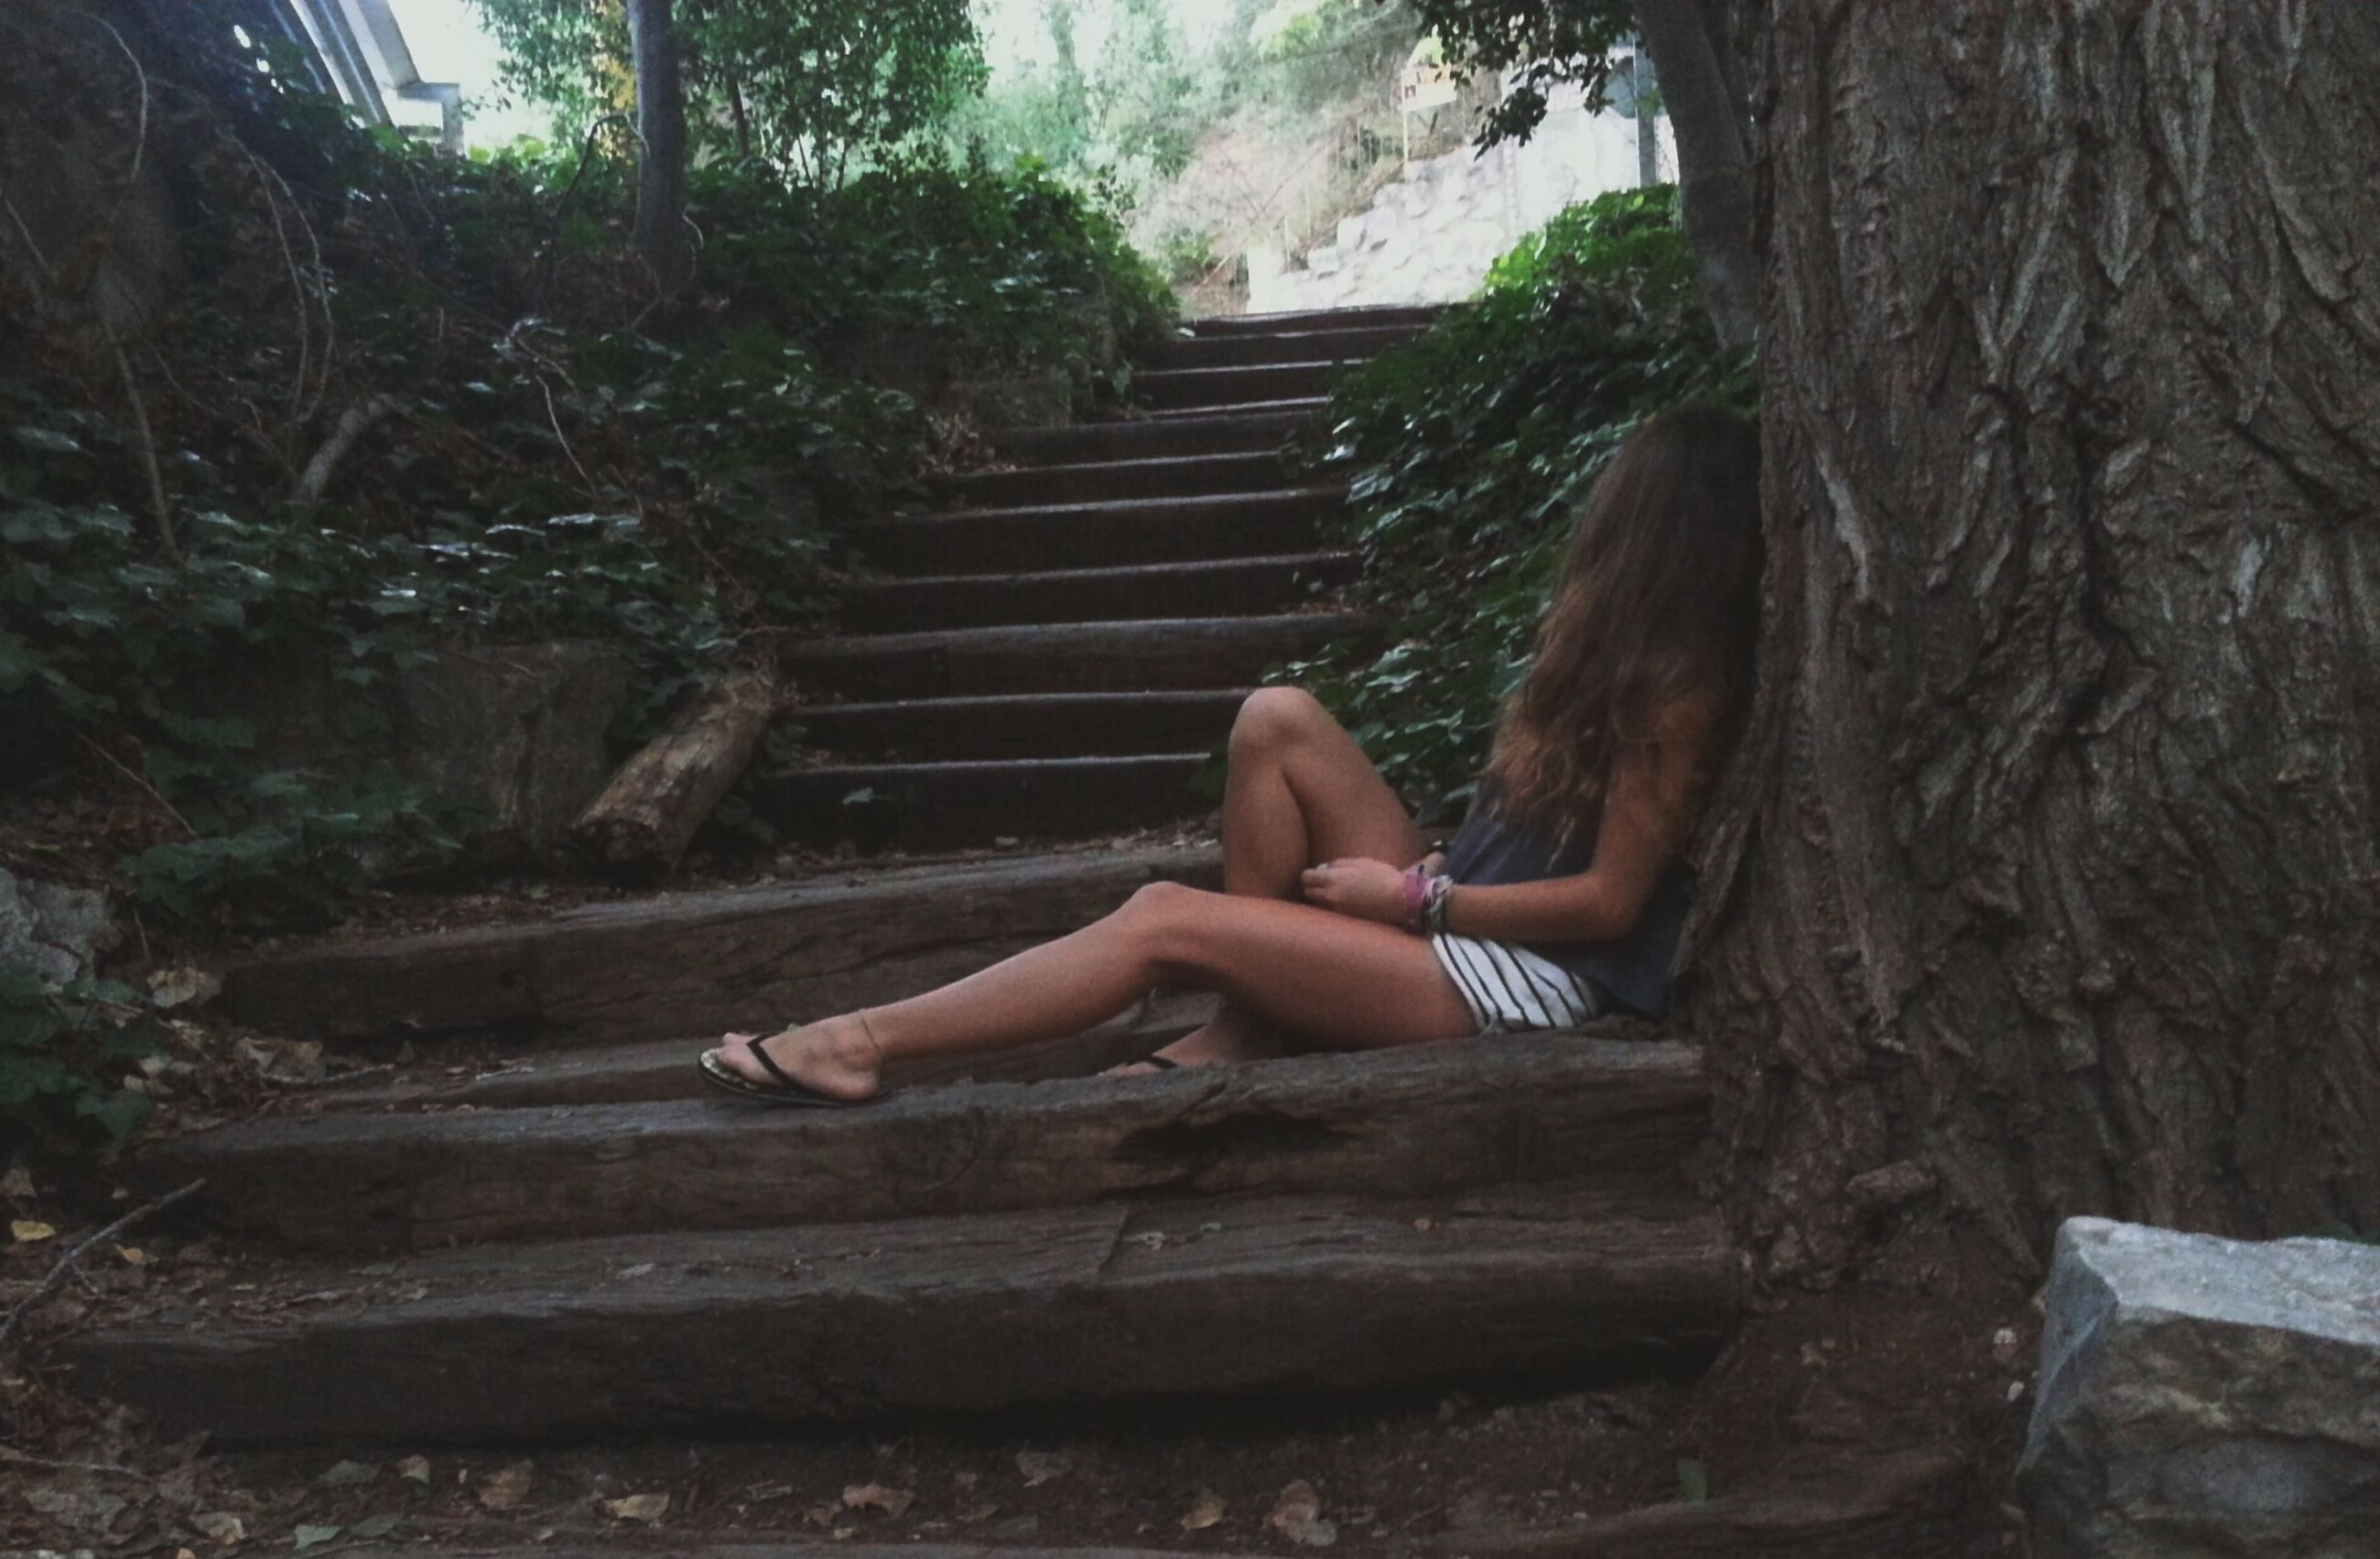 tree, relaxation, sitting, steps, leisure activity, lifestyles, wood - material, person, forest, bench, lying down, day, resting, steps and staircases, staircase, tree trunk, full length, outdoors